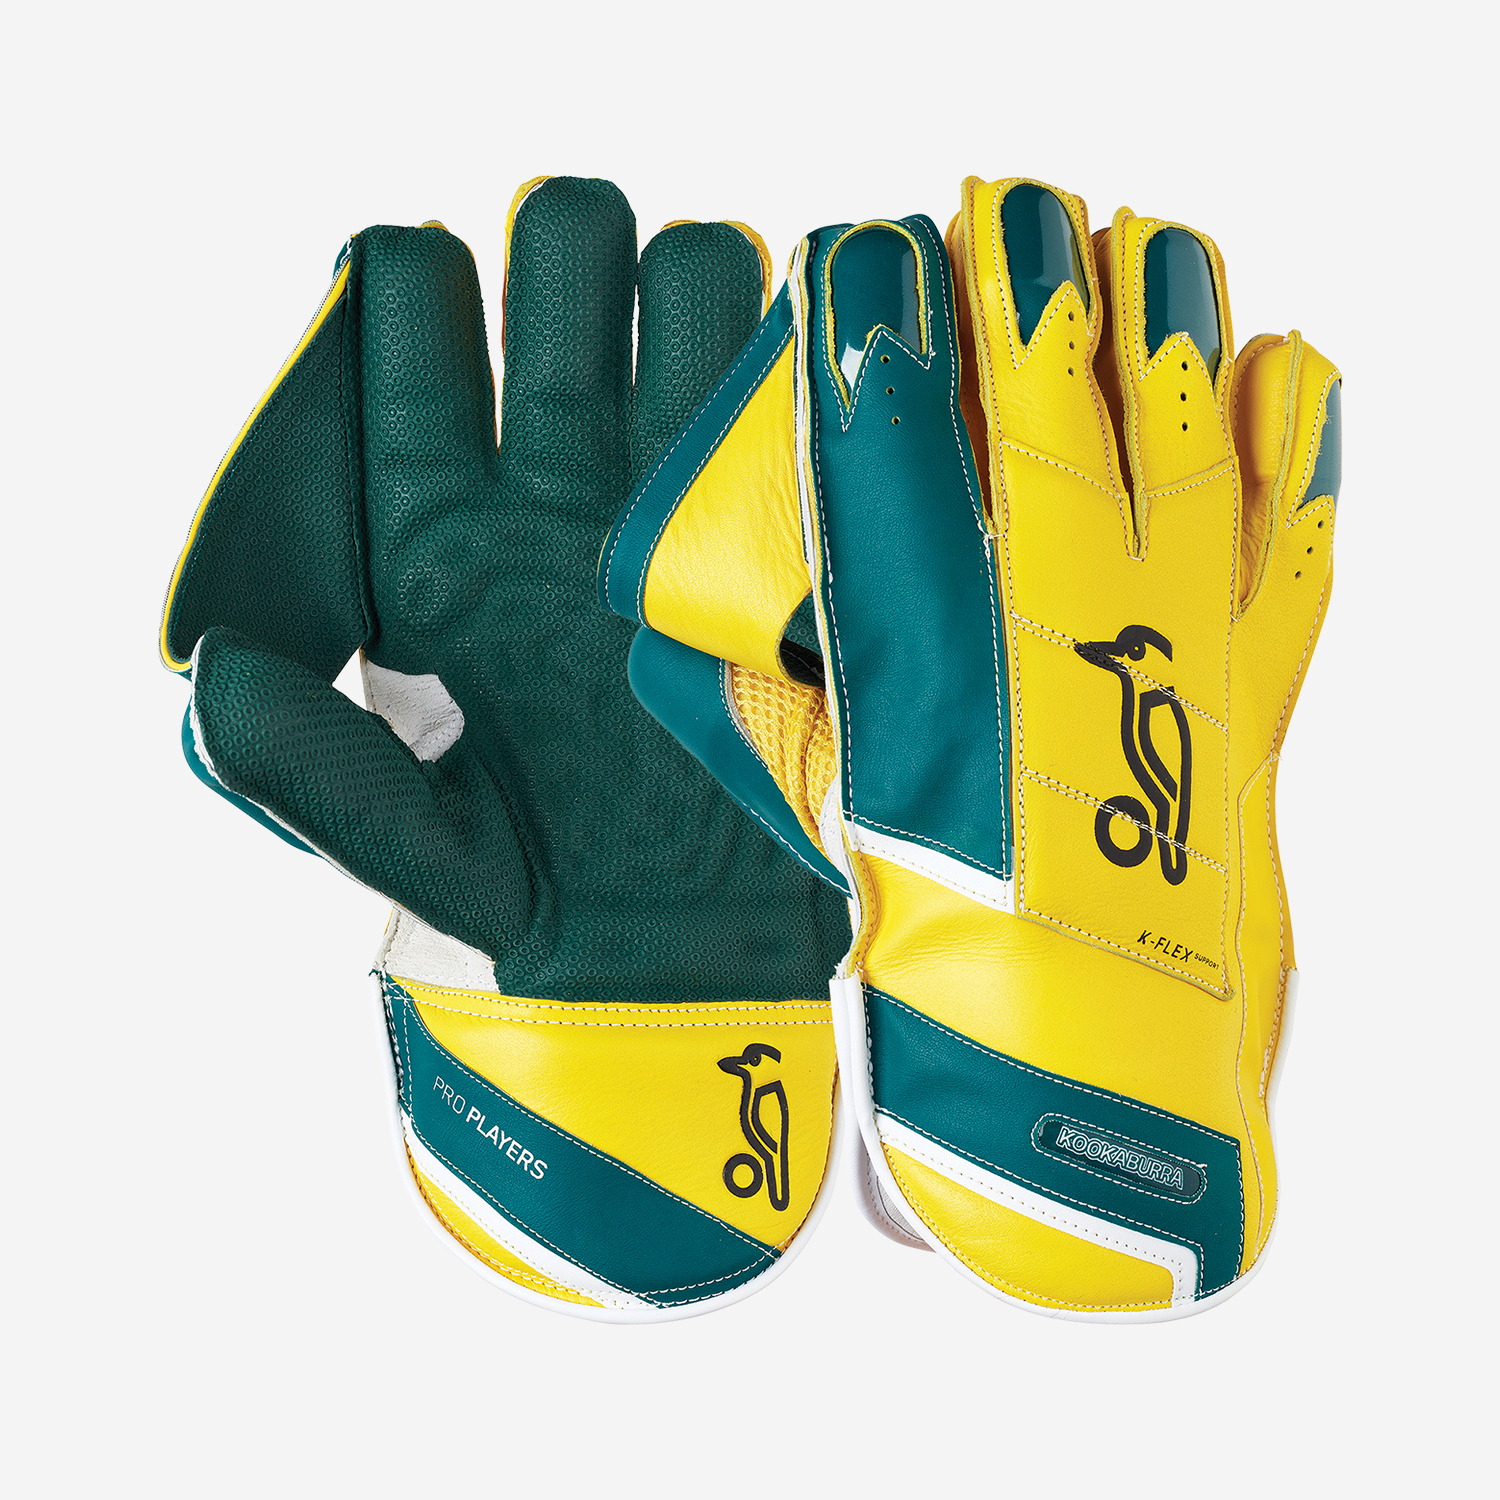 Pro Players Wicket Keeping Gloves